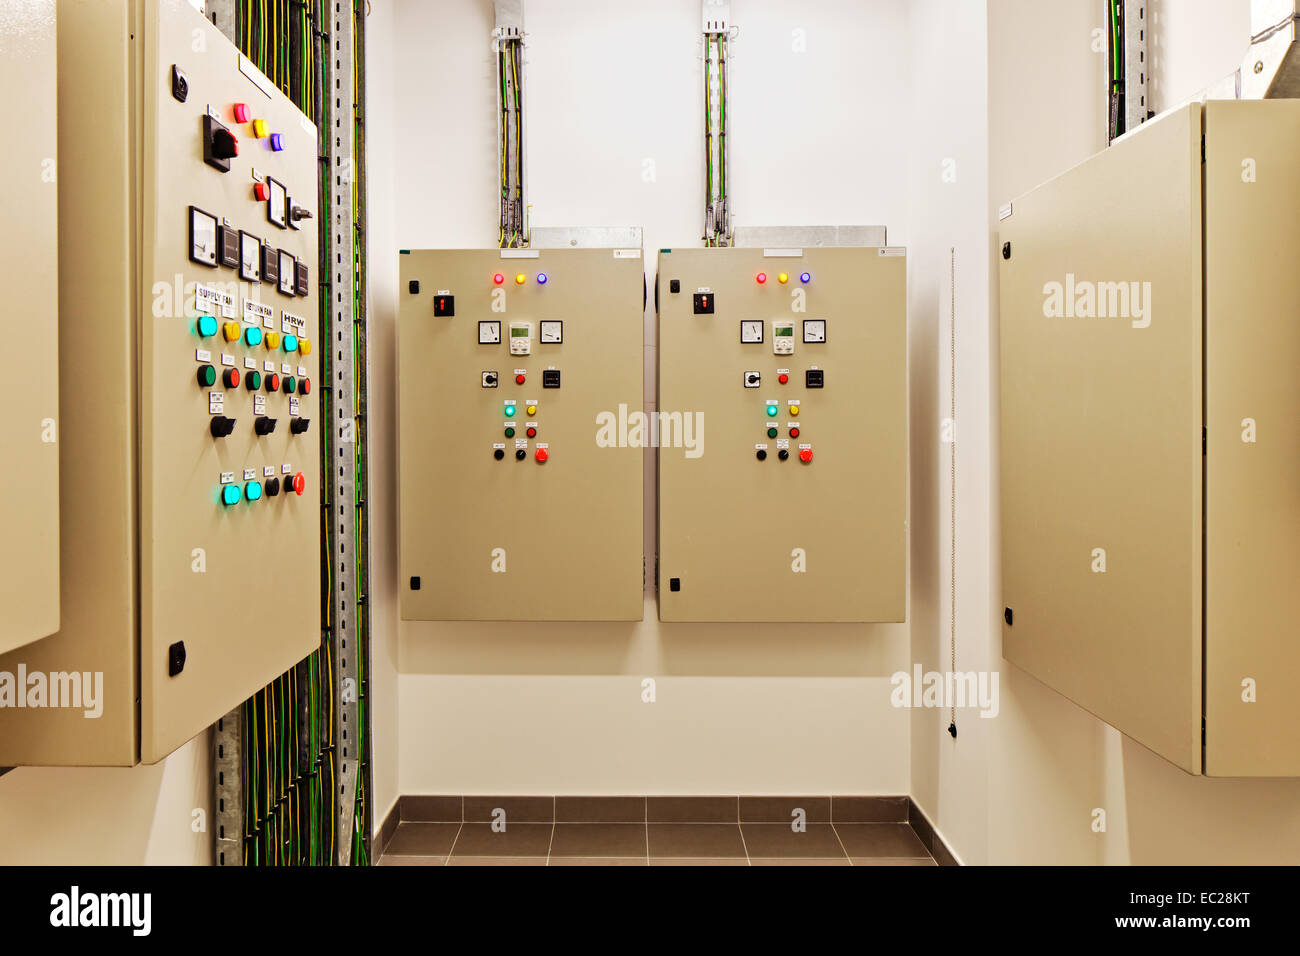 Air Con Stock Photos Images Page 2 Alamy Circuit Breaker Panel Image Electrical Switch Gear And Breakers That Control Heat Recovery Conditioning Light